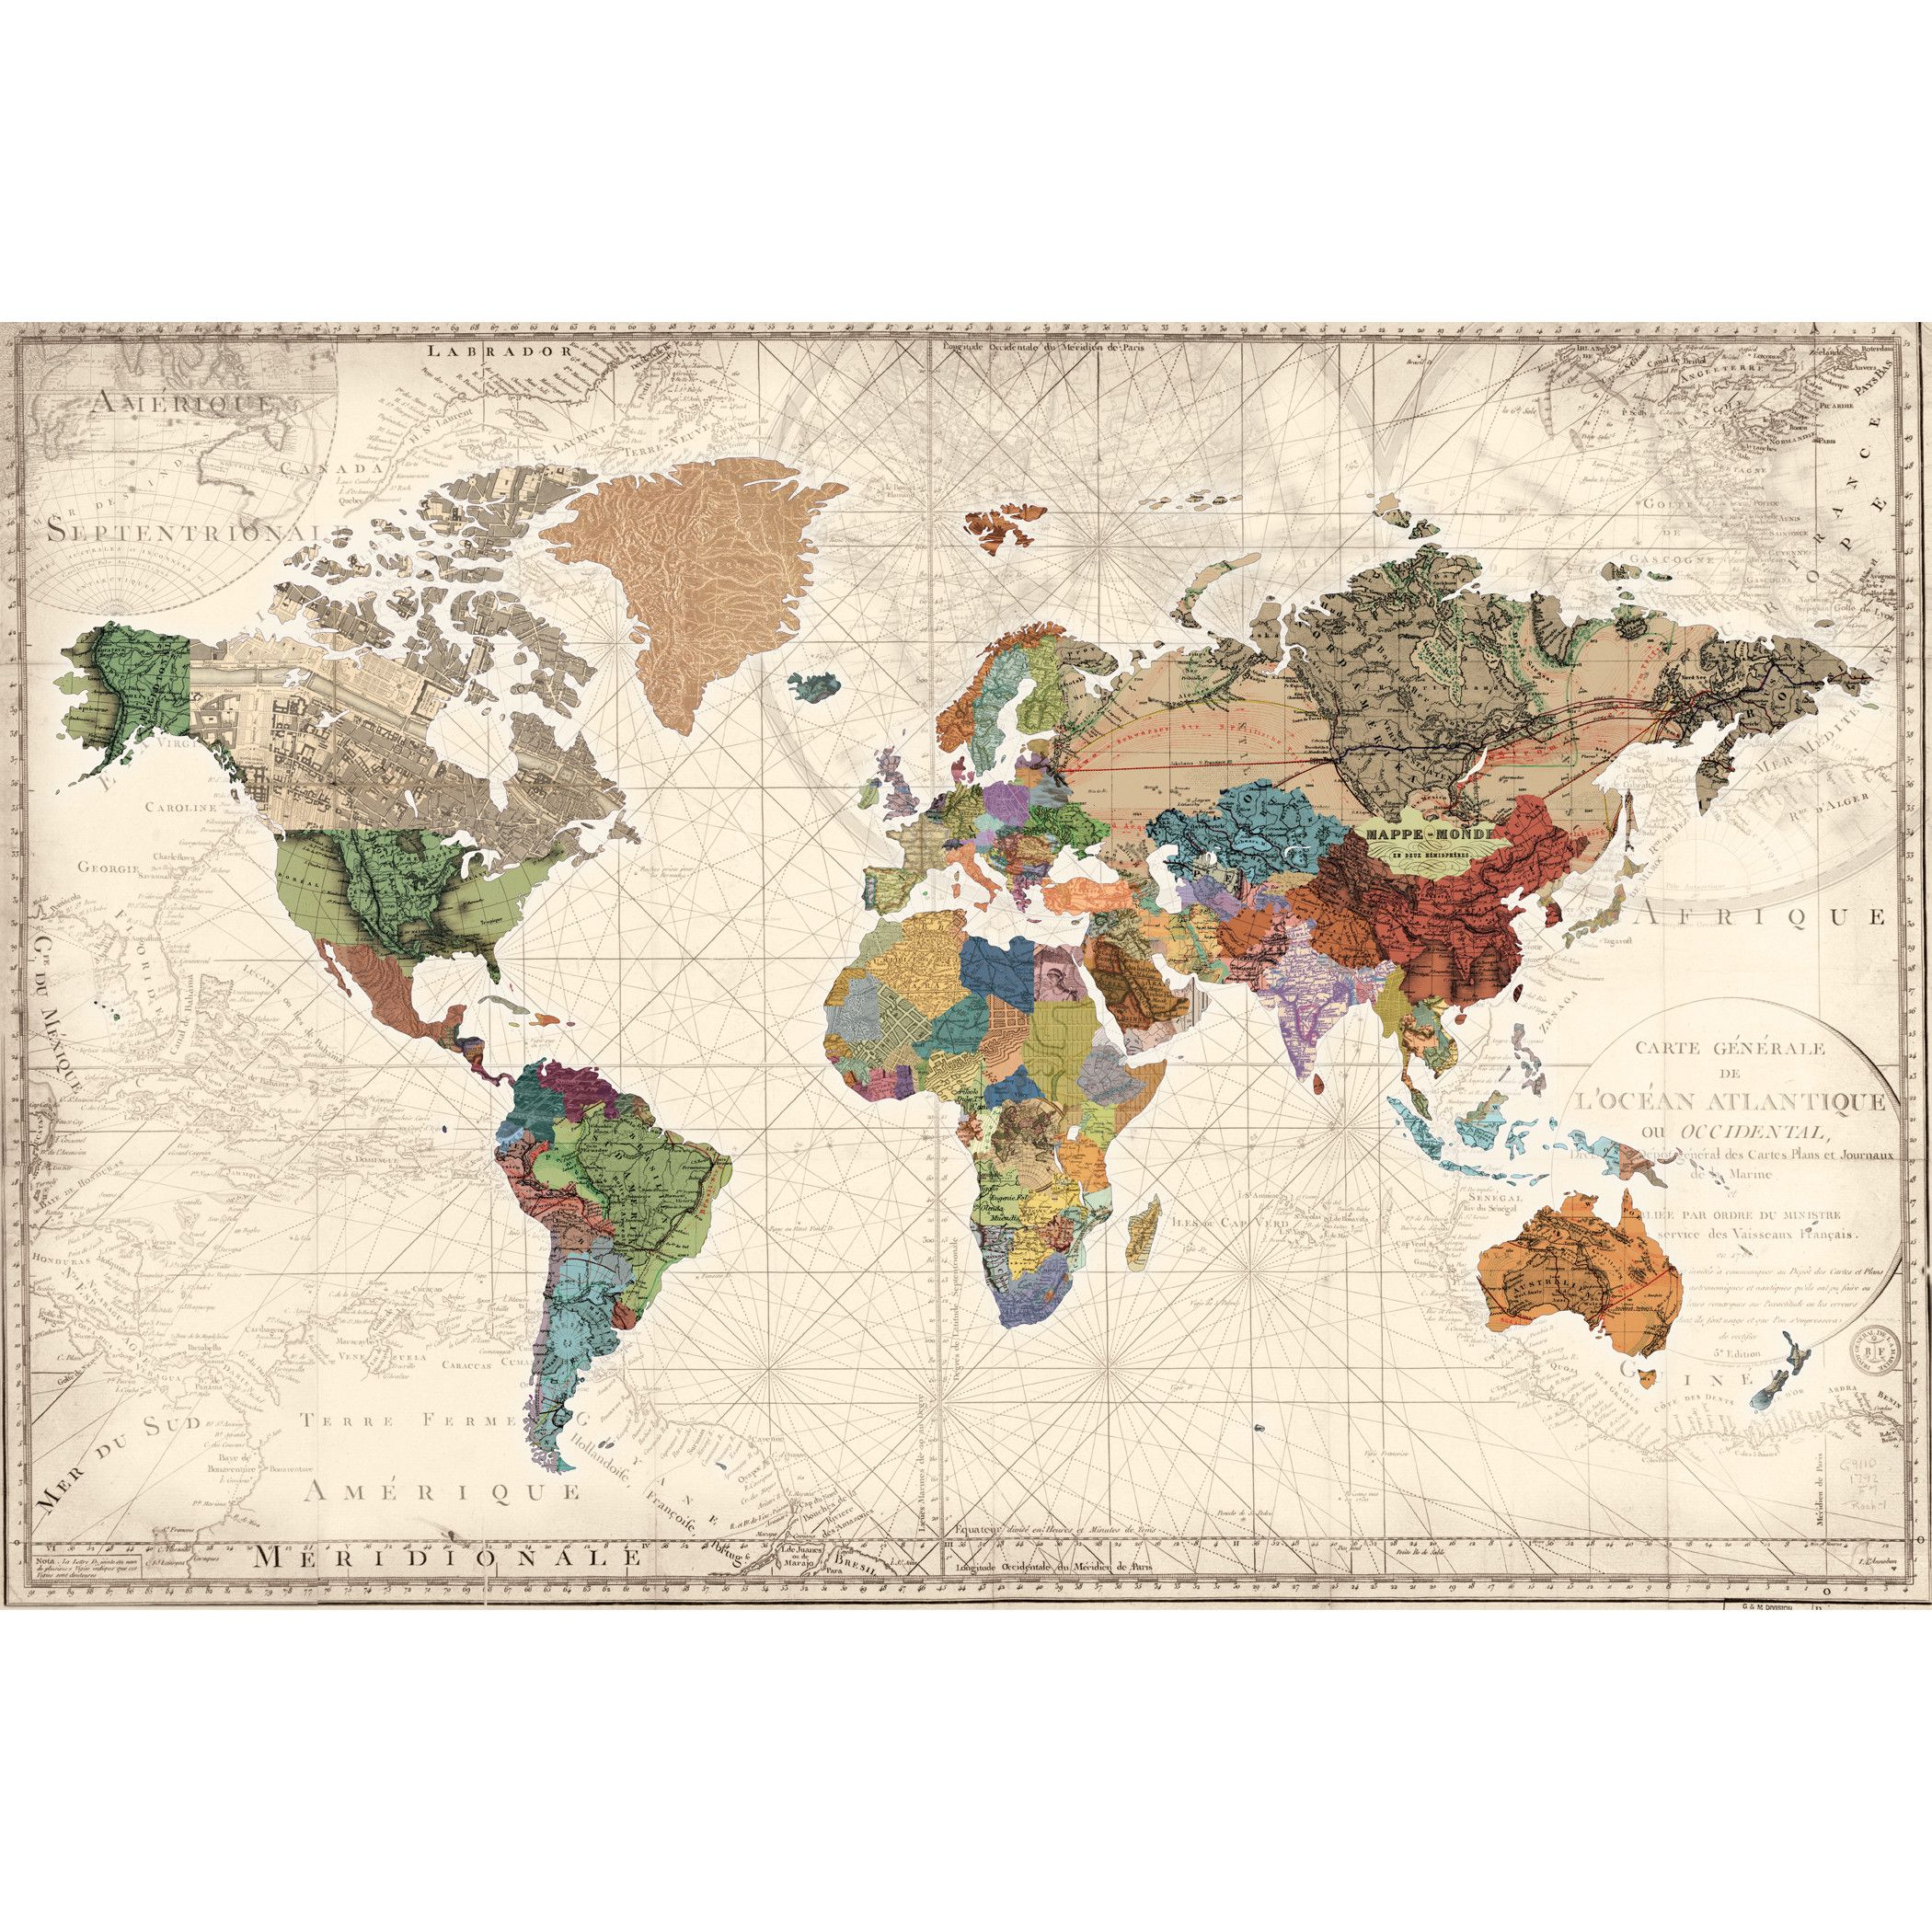 Portfolio canvas decor world map of maps by studio voltaire graphic portfolio canvas decor world map of maps by studio voltaire graphic art on wrapped canvas gumiabroncs Image collections